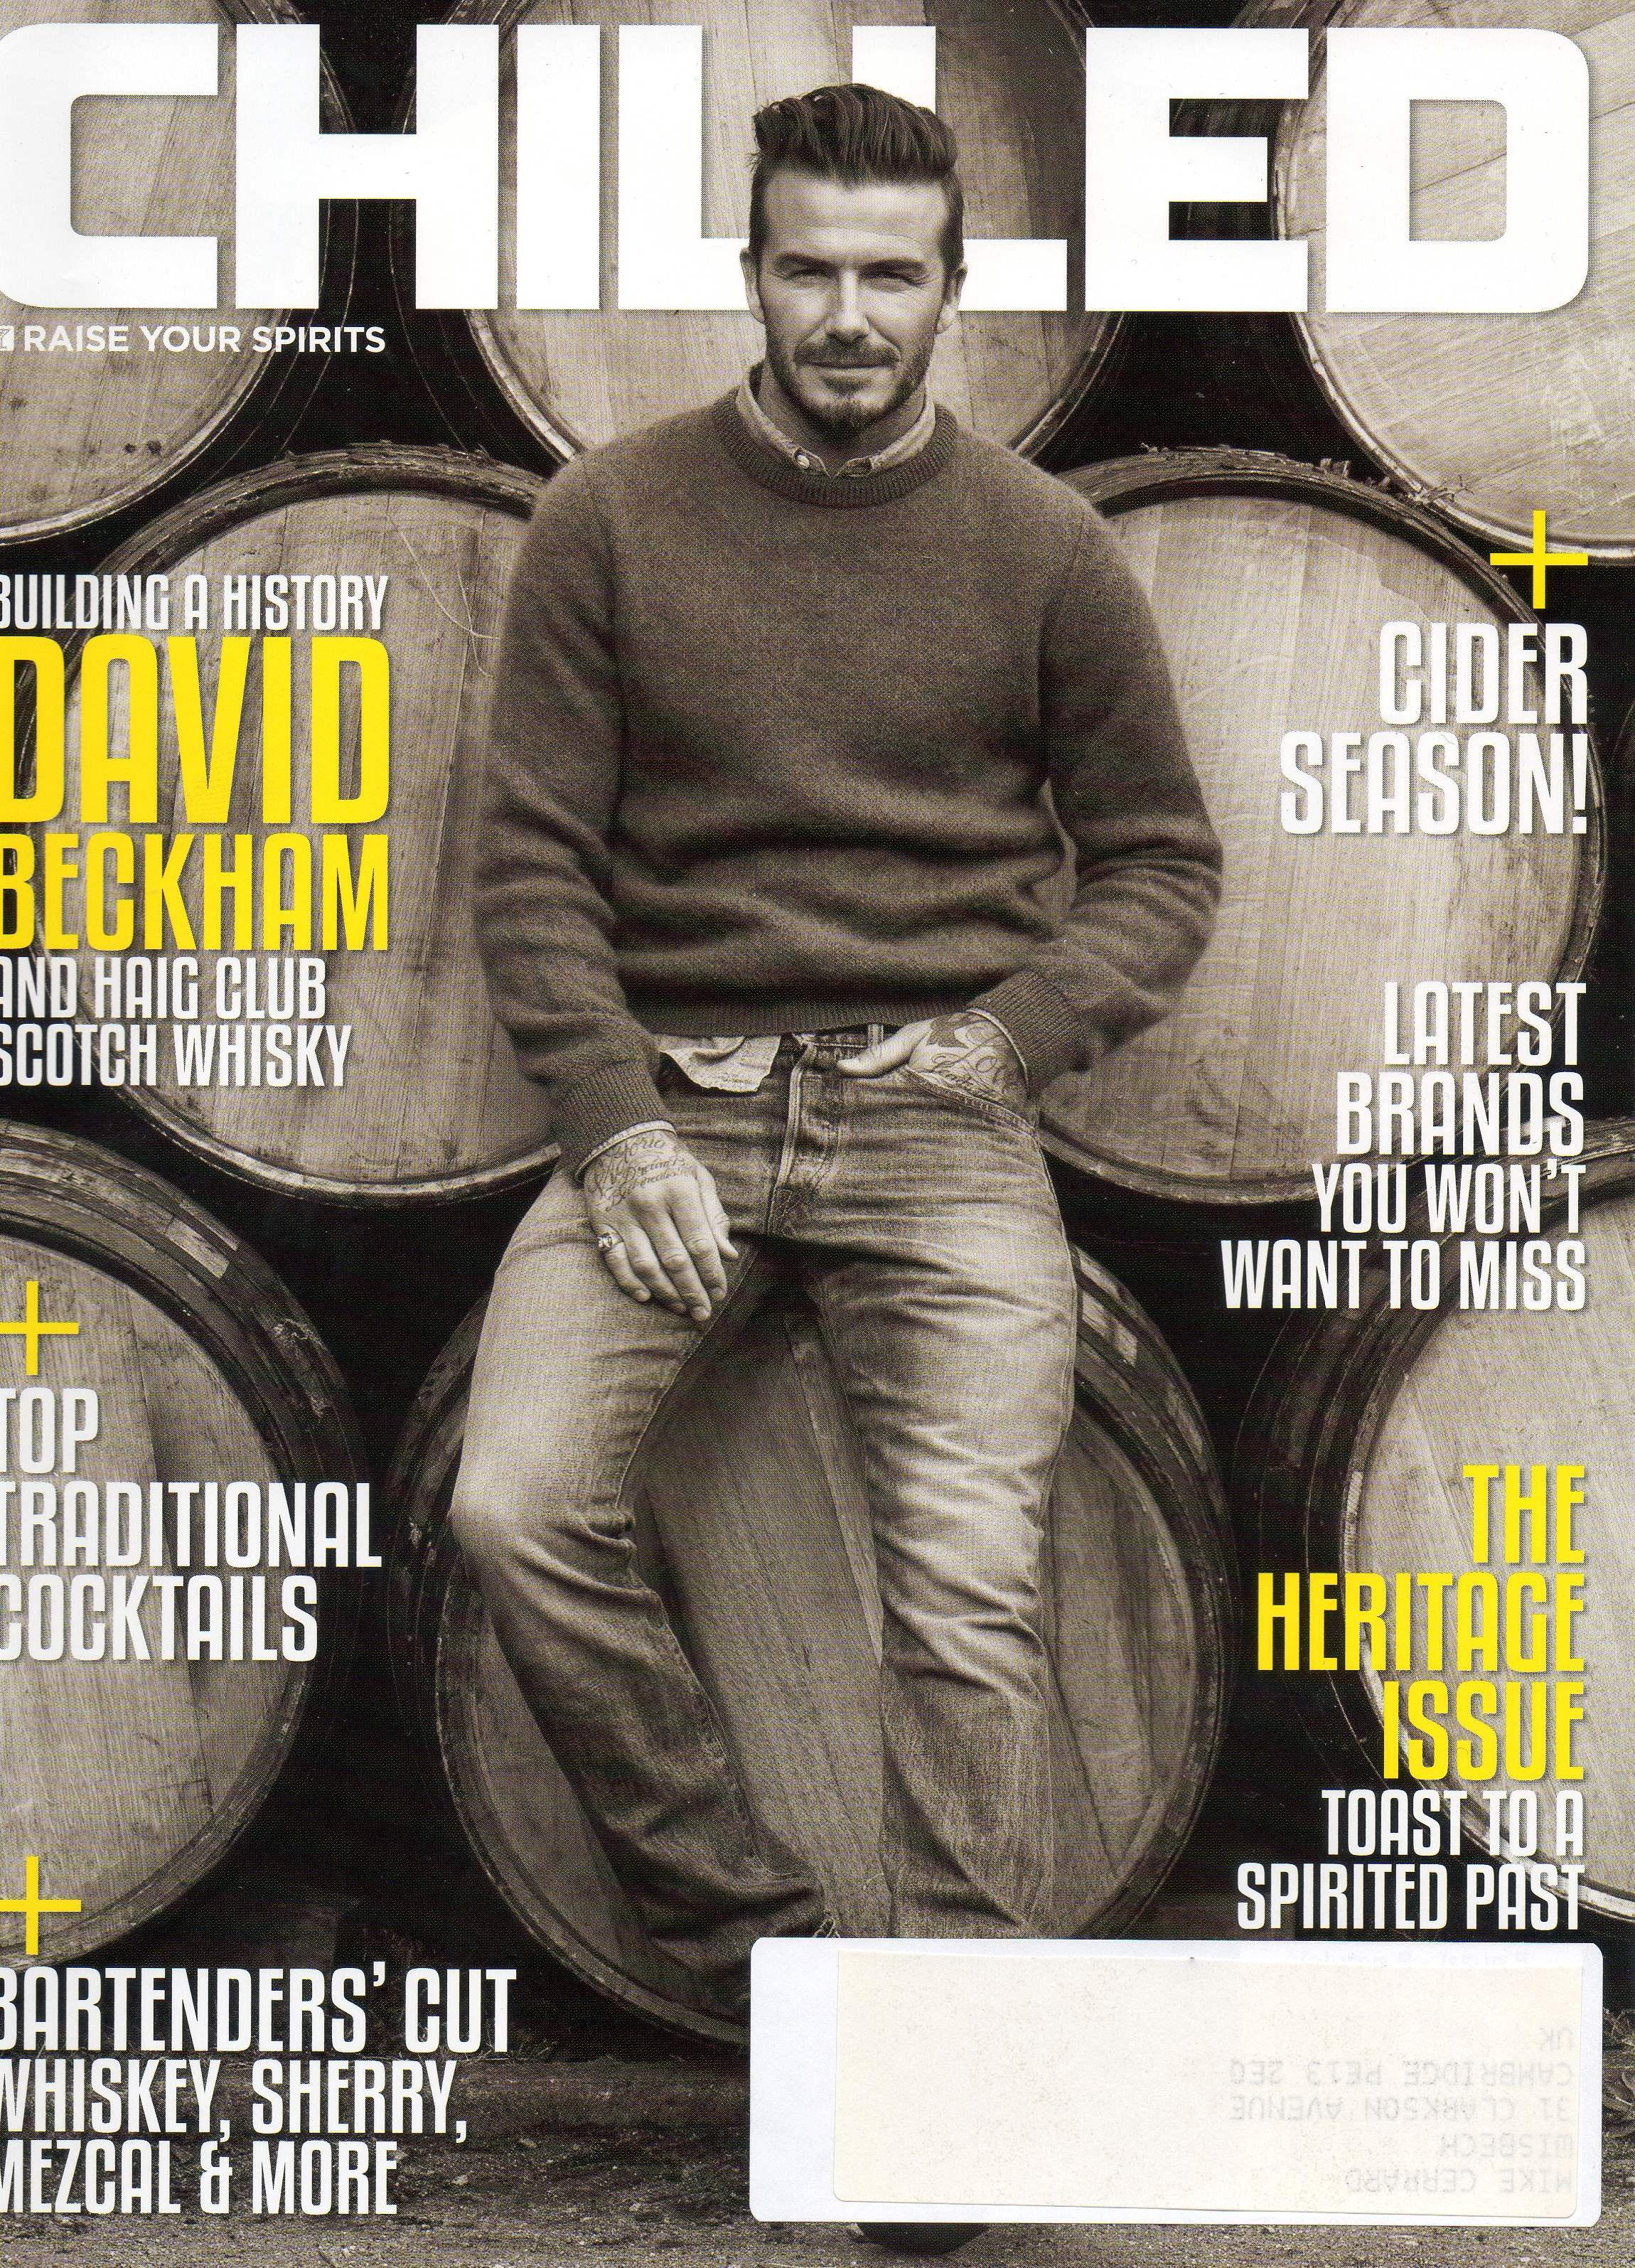 Chilled Volume 8 Issue 5 Heritage Issue David Beckham Cover jpeg